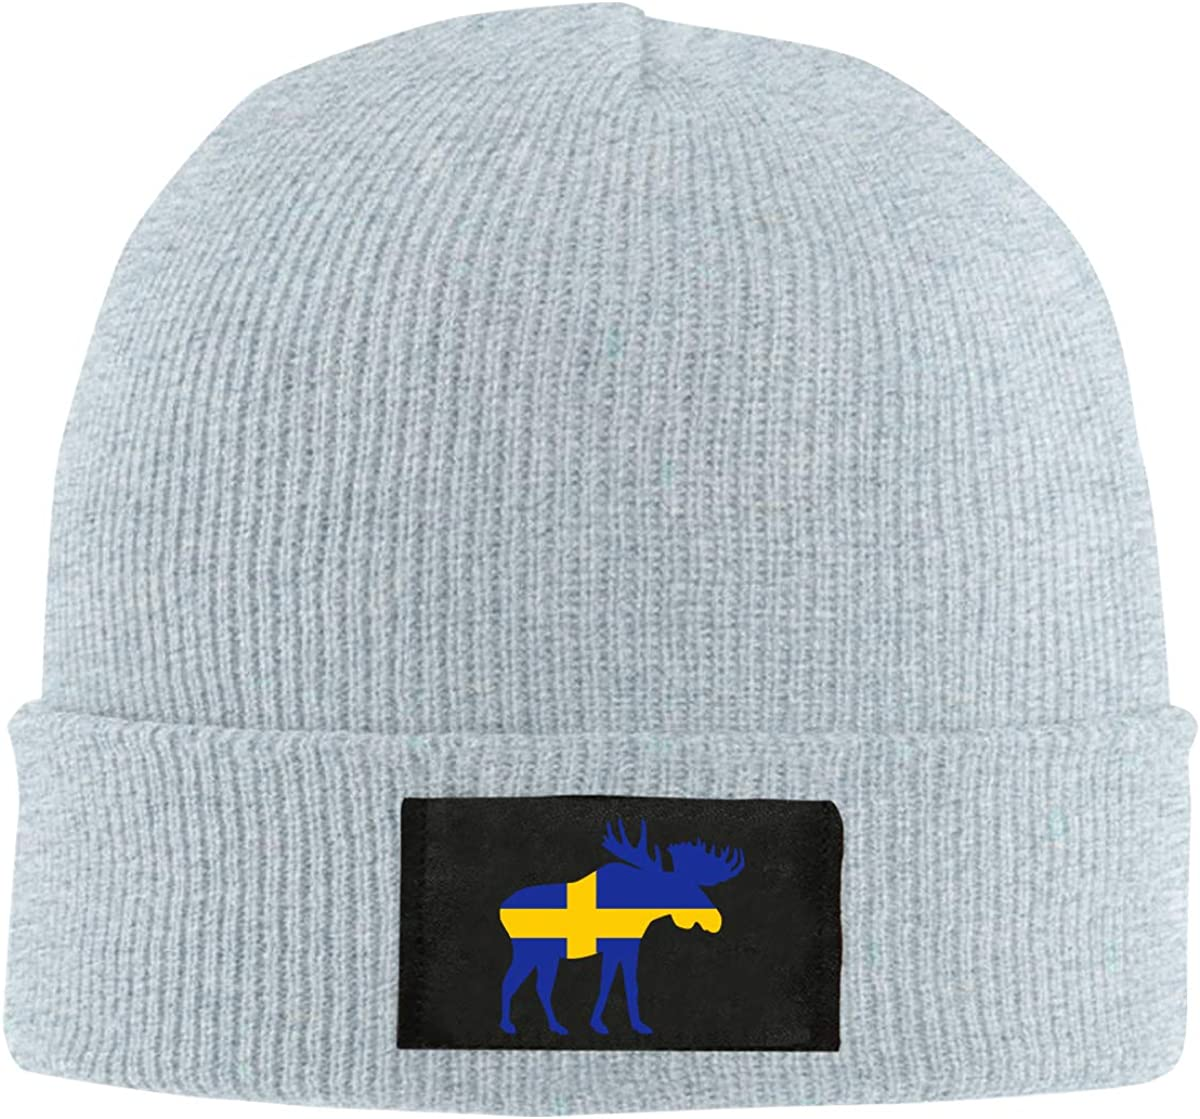 100/% Acrylic Thick Skull Cap BF5Y6z/&MA Unisex Moose Sweden Flag Knitting Hat